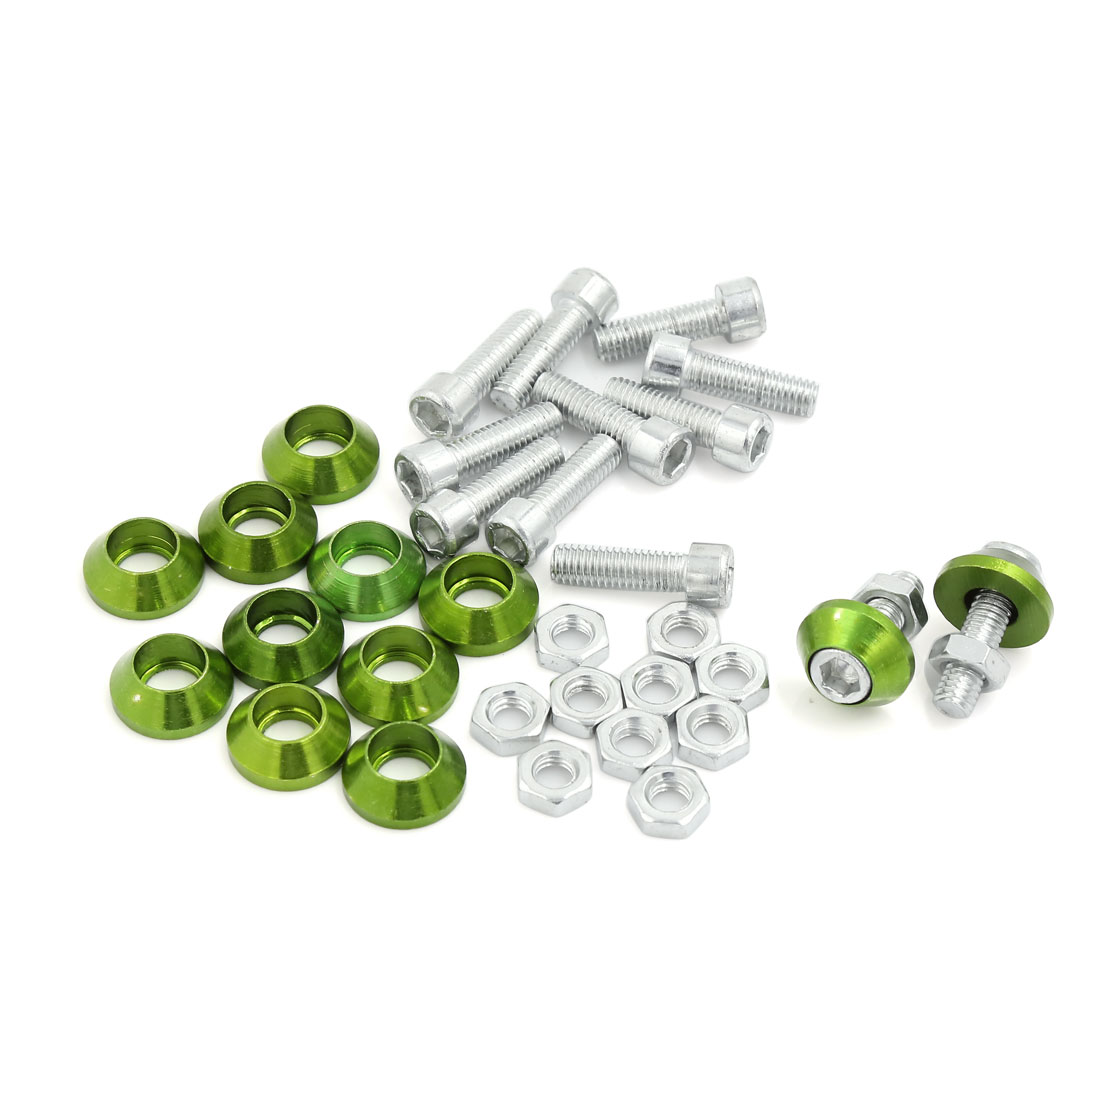 12 Pcs Green Cone Style License Number Plate Bolt Screw 6mm Thread Dia for Car